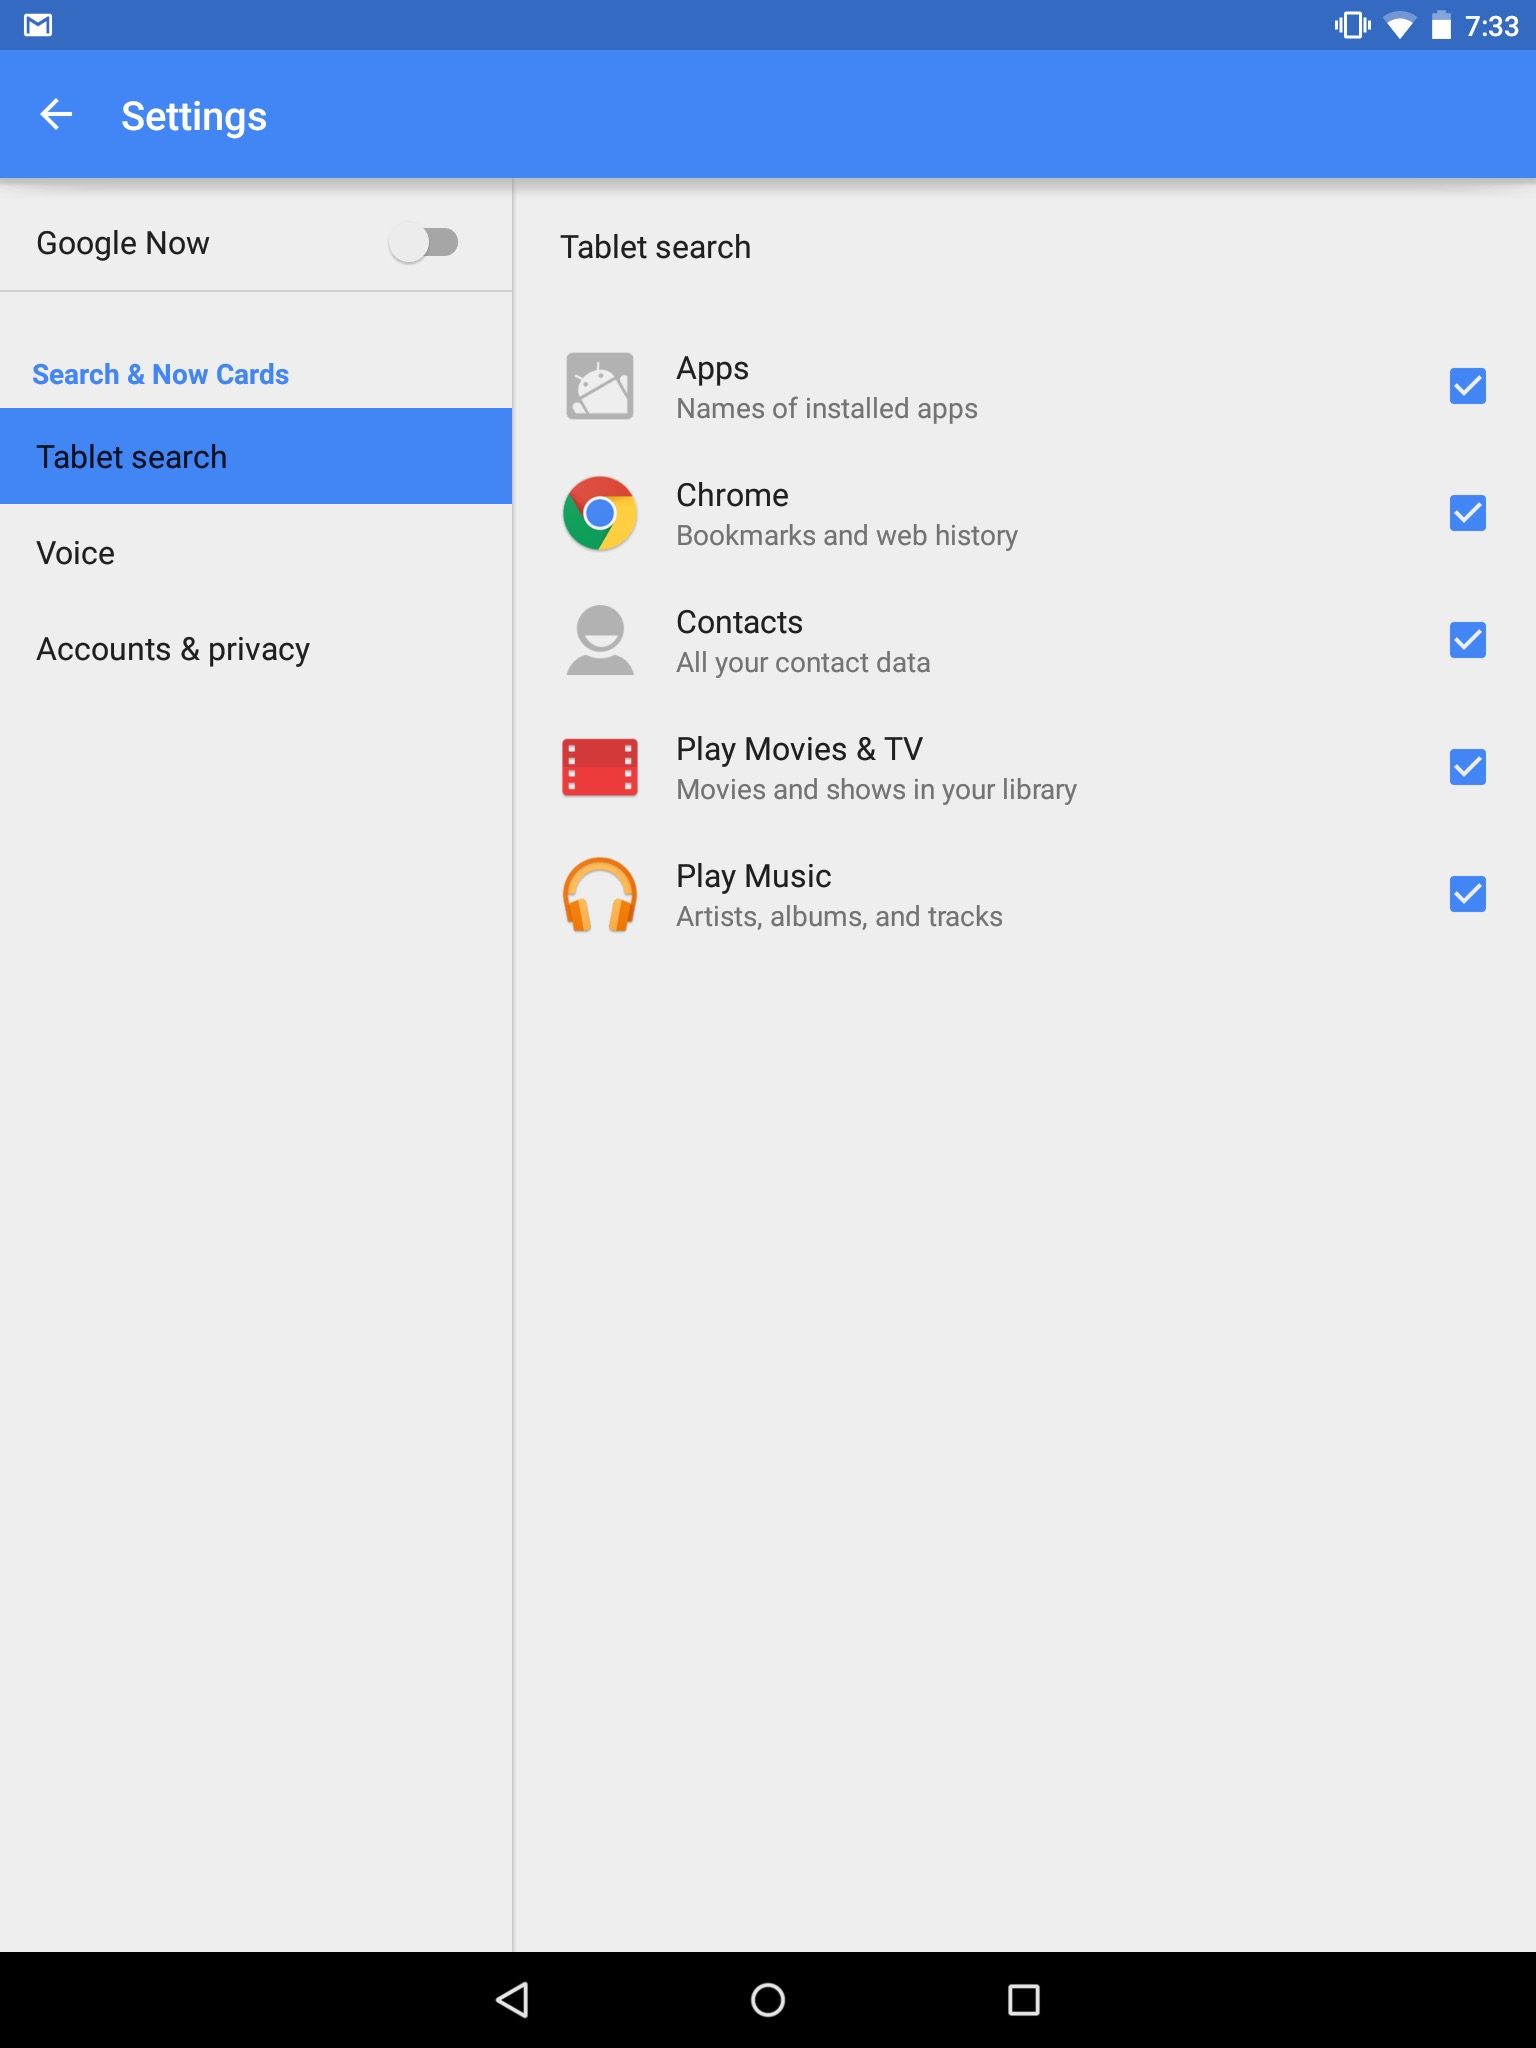 google now settings